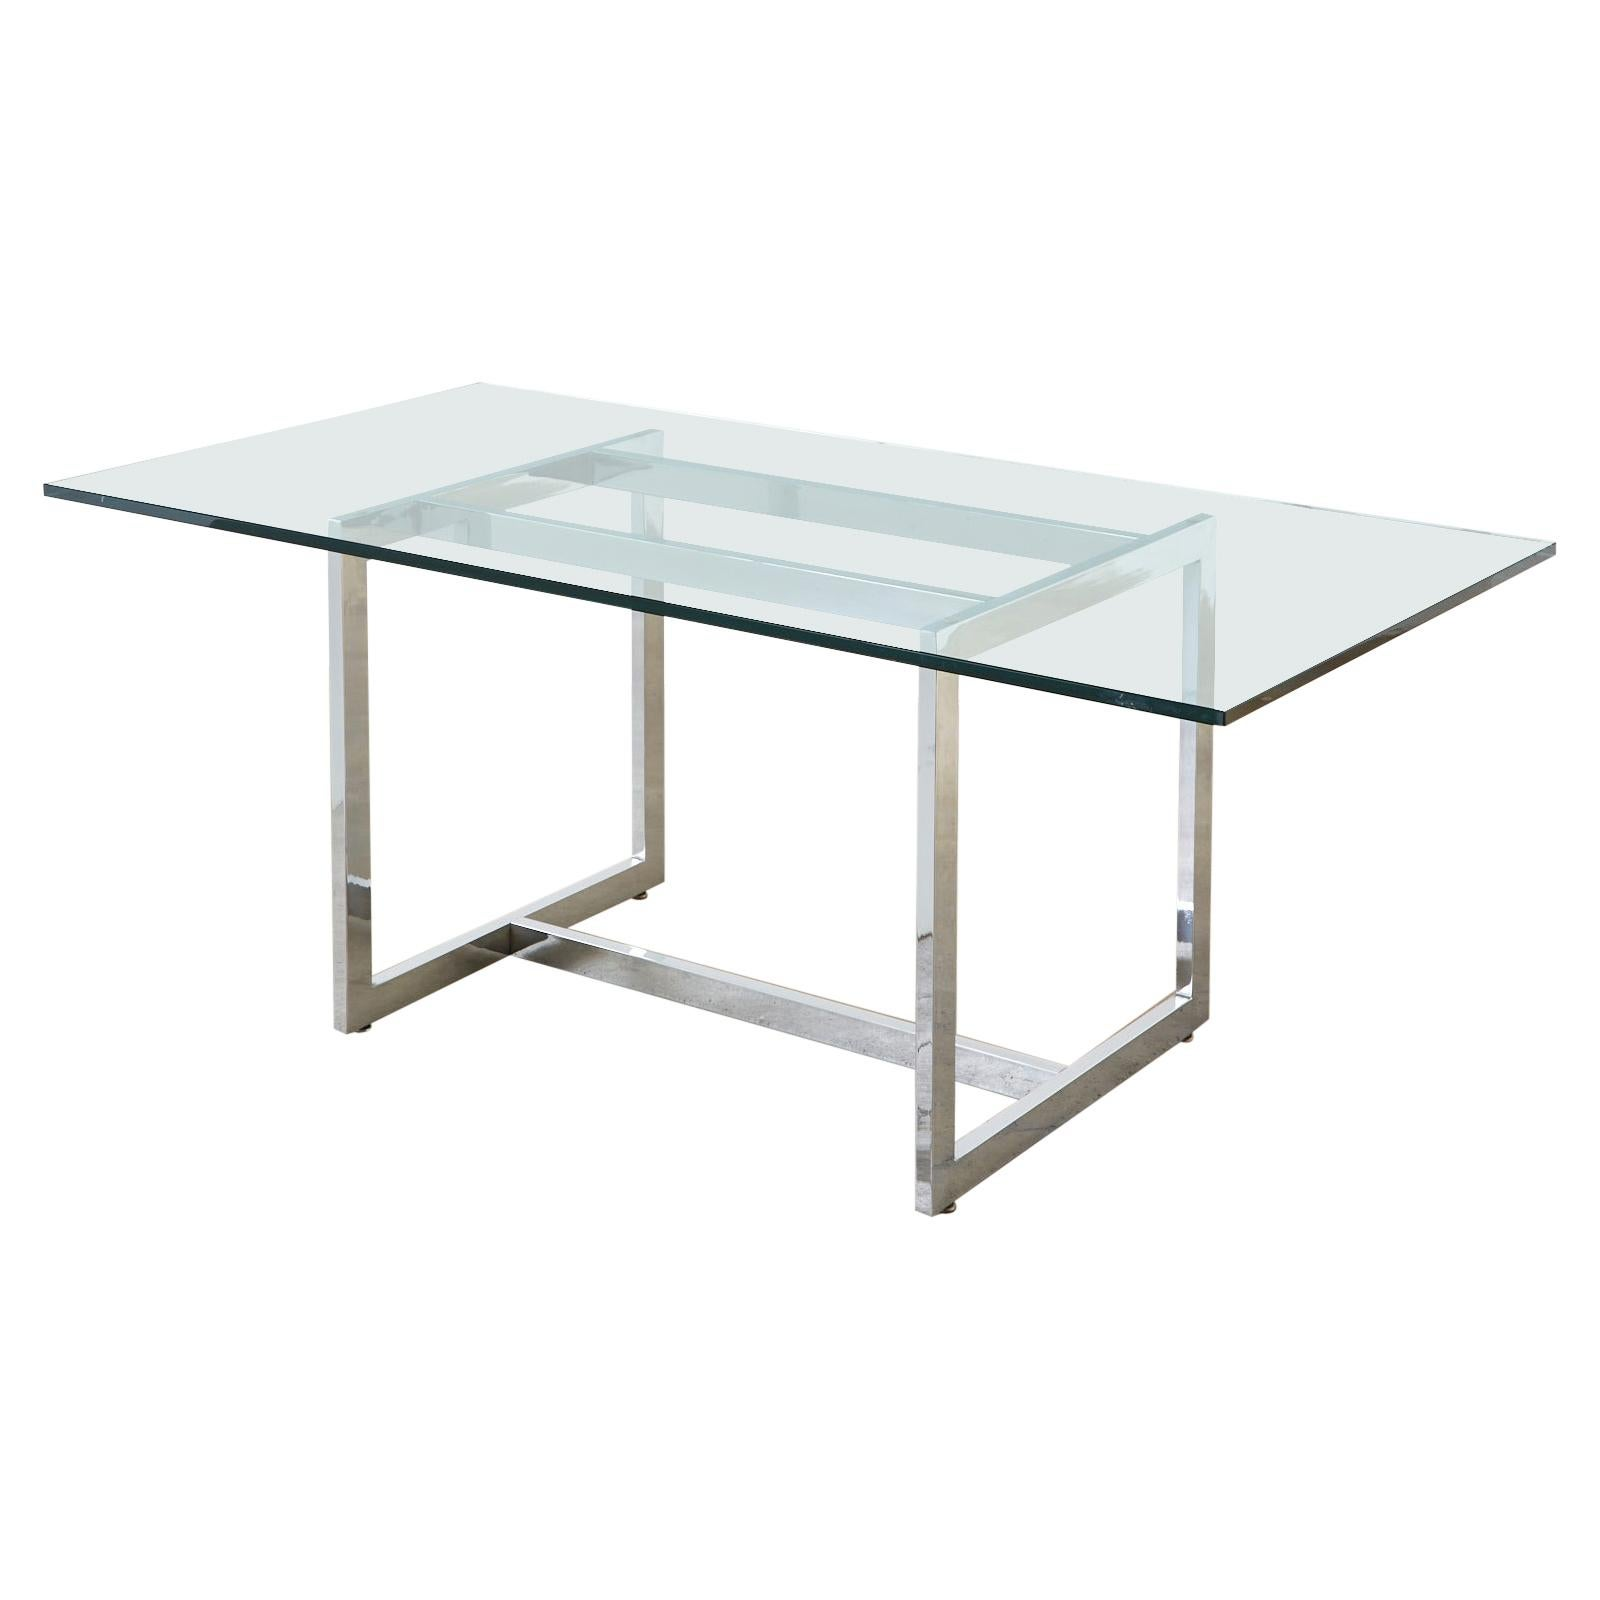 Milo Baughman Midcentury Chrome and Glass Dining Table